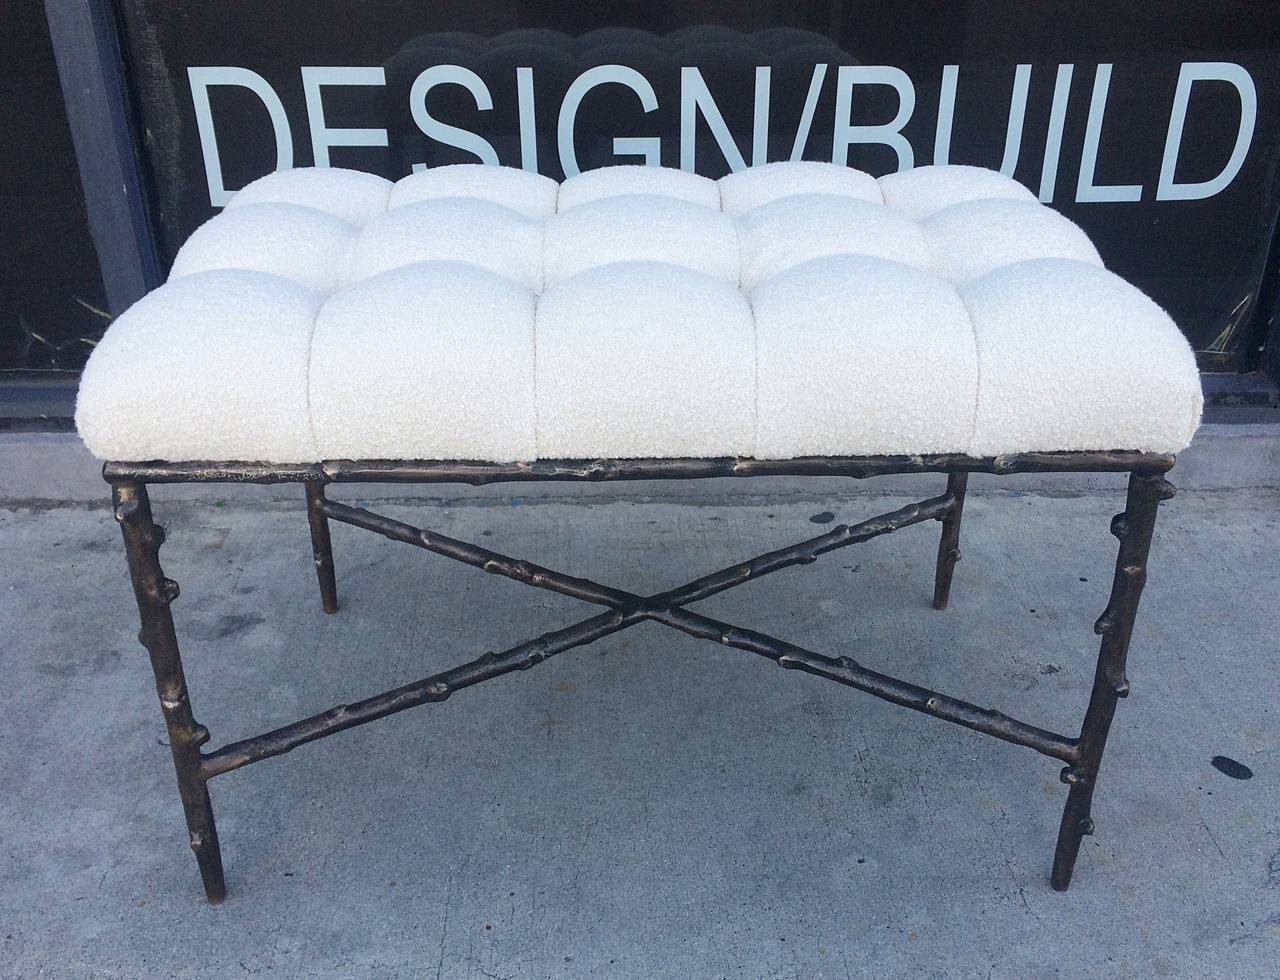 Solid Bronze Benches with Tufted Seats, Limited Edition of 200, Numbers 1 and 2 For Sale 1